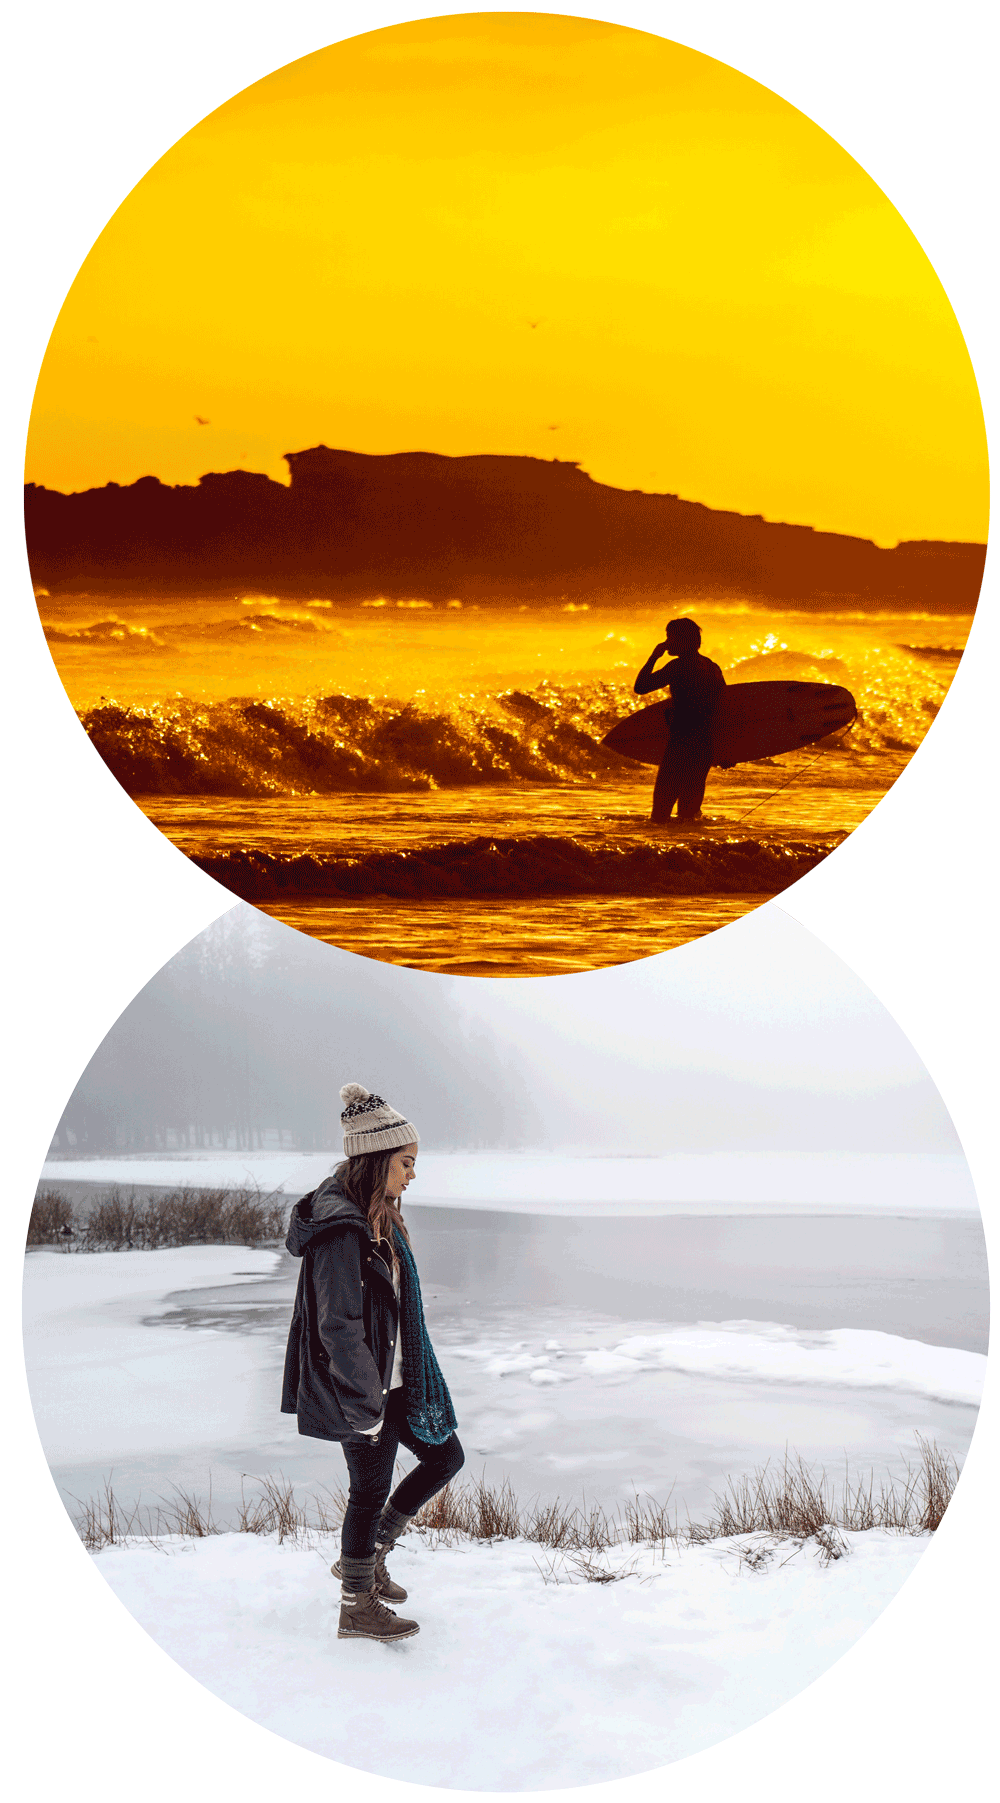 A rich orange sunset engulfs the silhouette of a surfer about to walk back in the surf. A young woman, wearing a beanie, gloves and a winter jacket is wondering past an iced over lake.